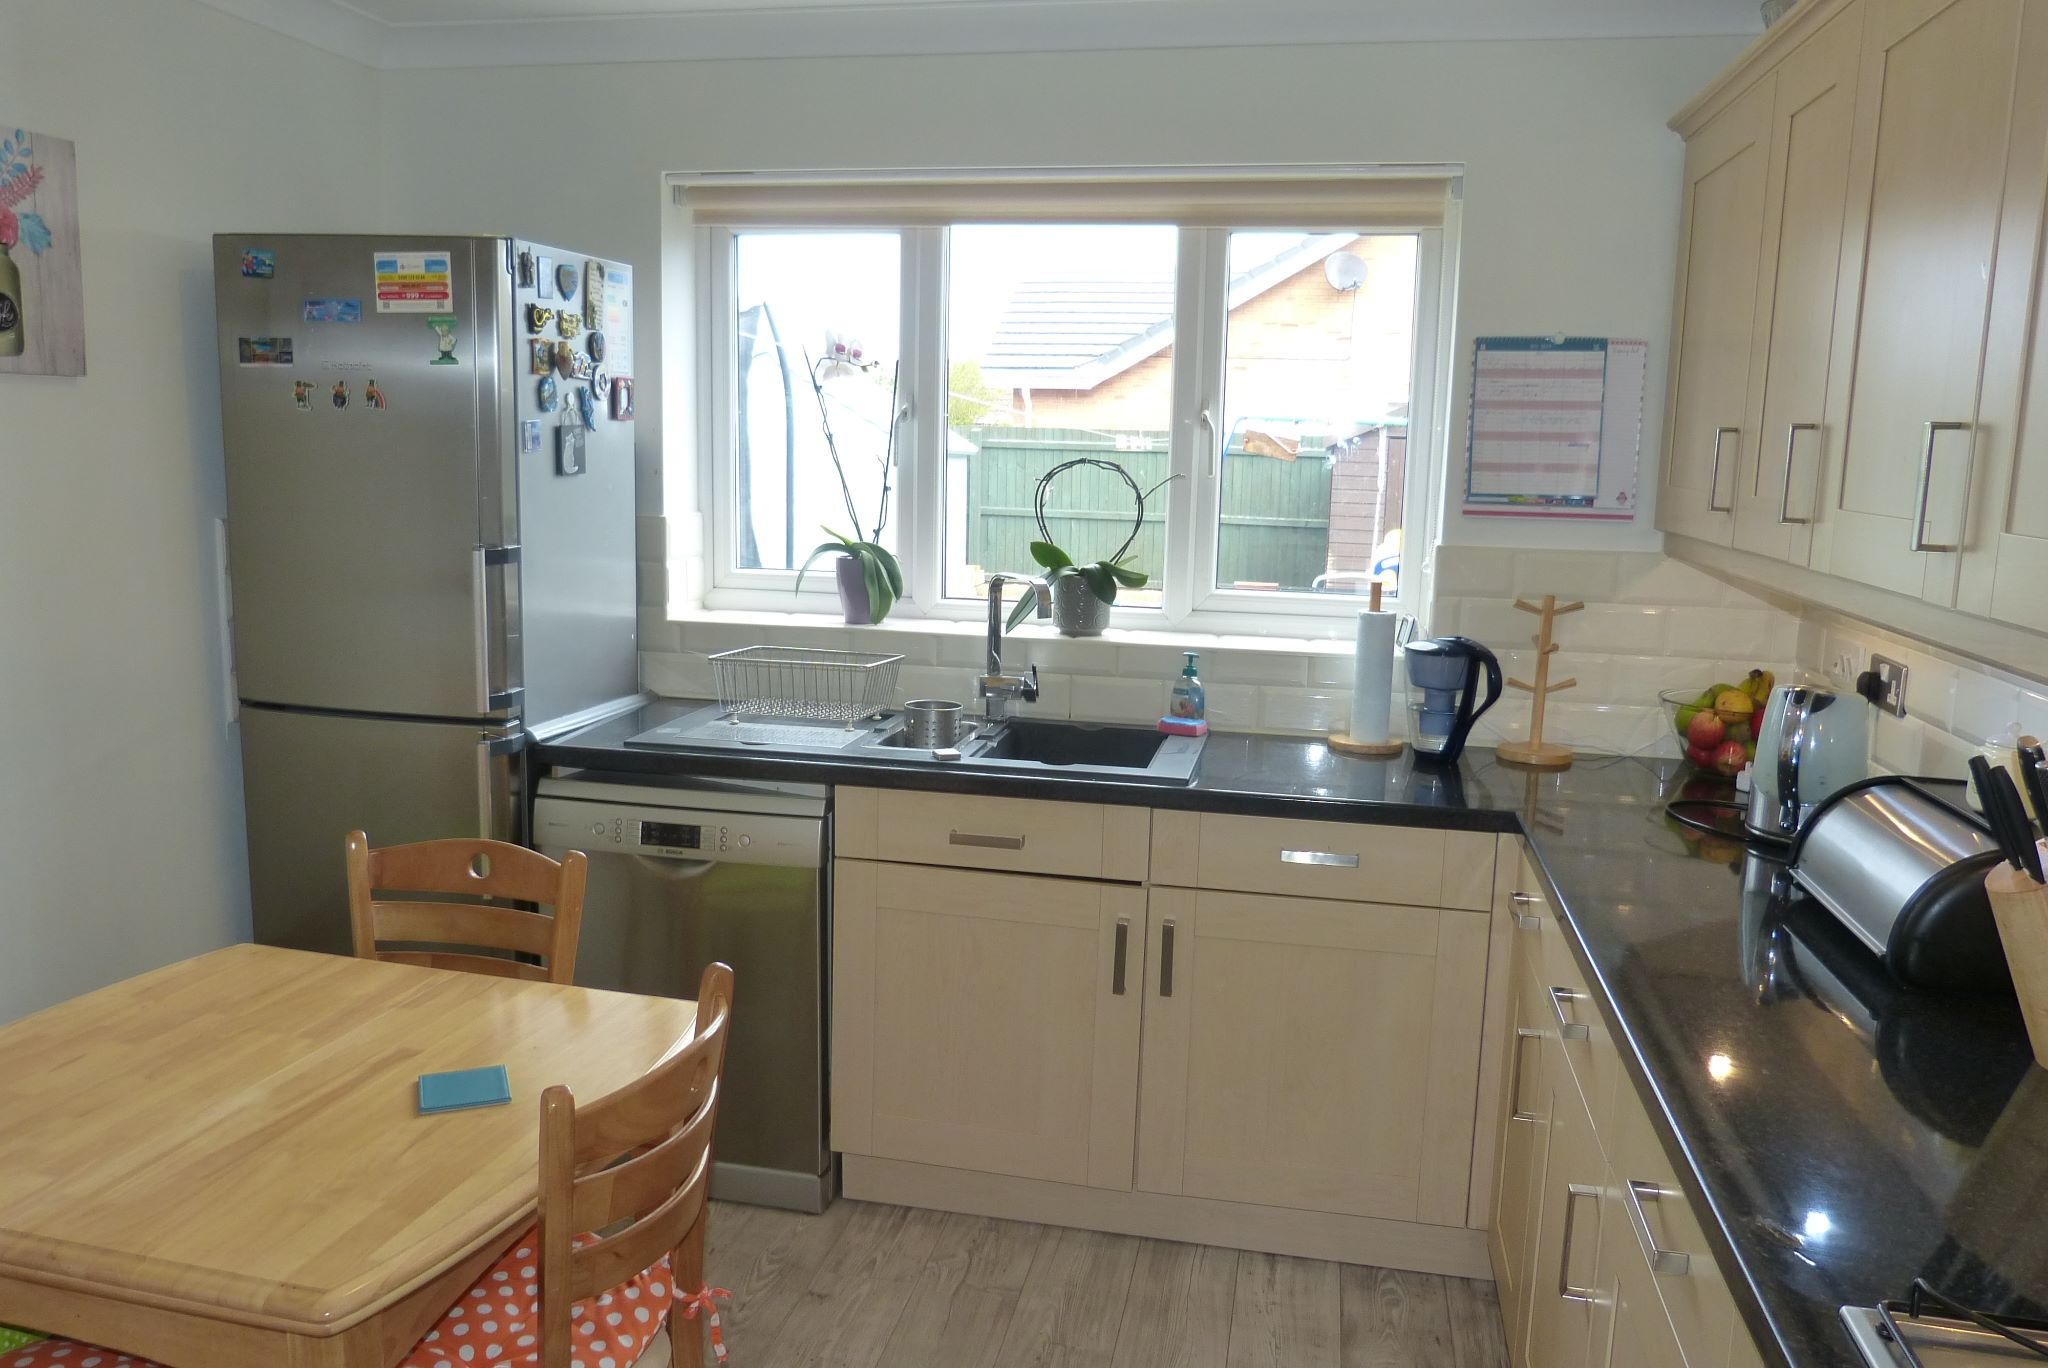 4 bedroom detached house SSTC in Abergele - Photograph 3